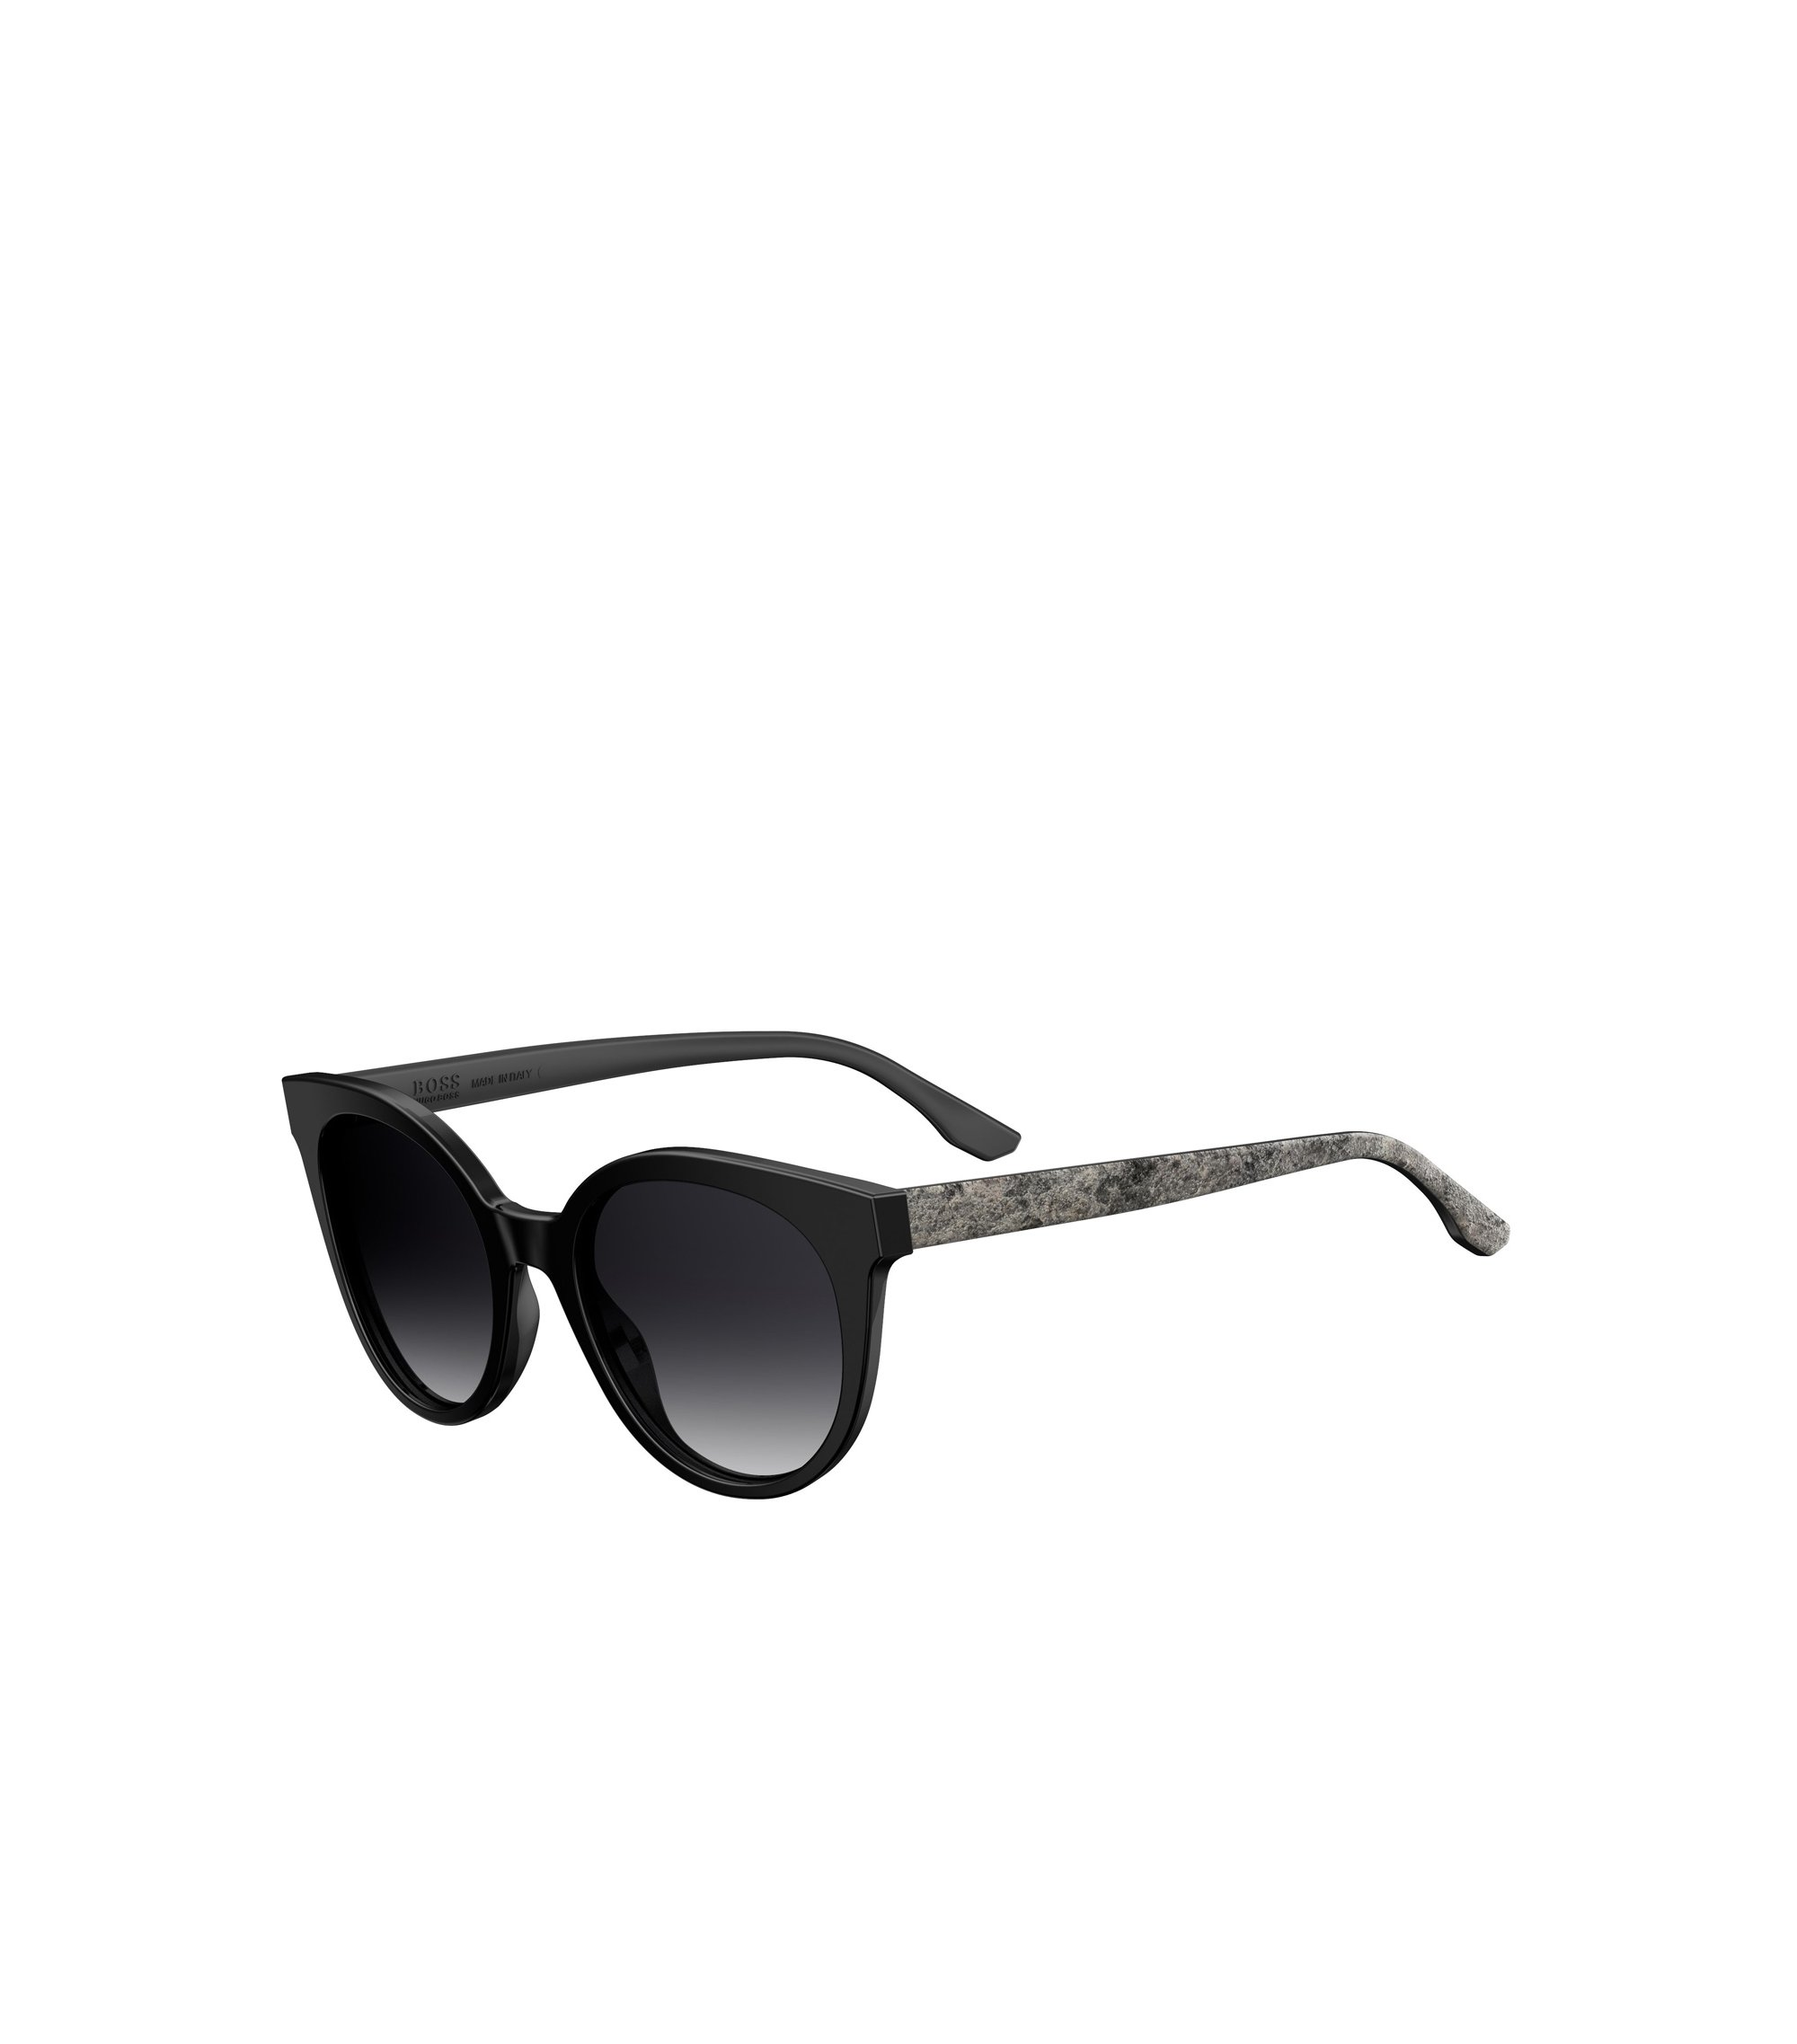 Black Acetate Round Sunglasses | BOSS 0890S, Assorted-Pre-Pack